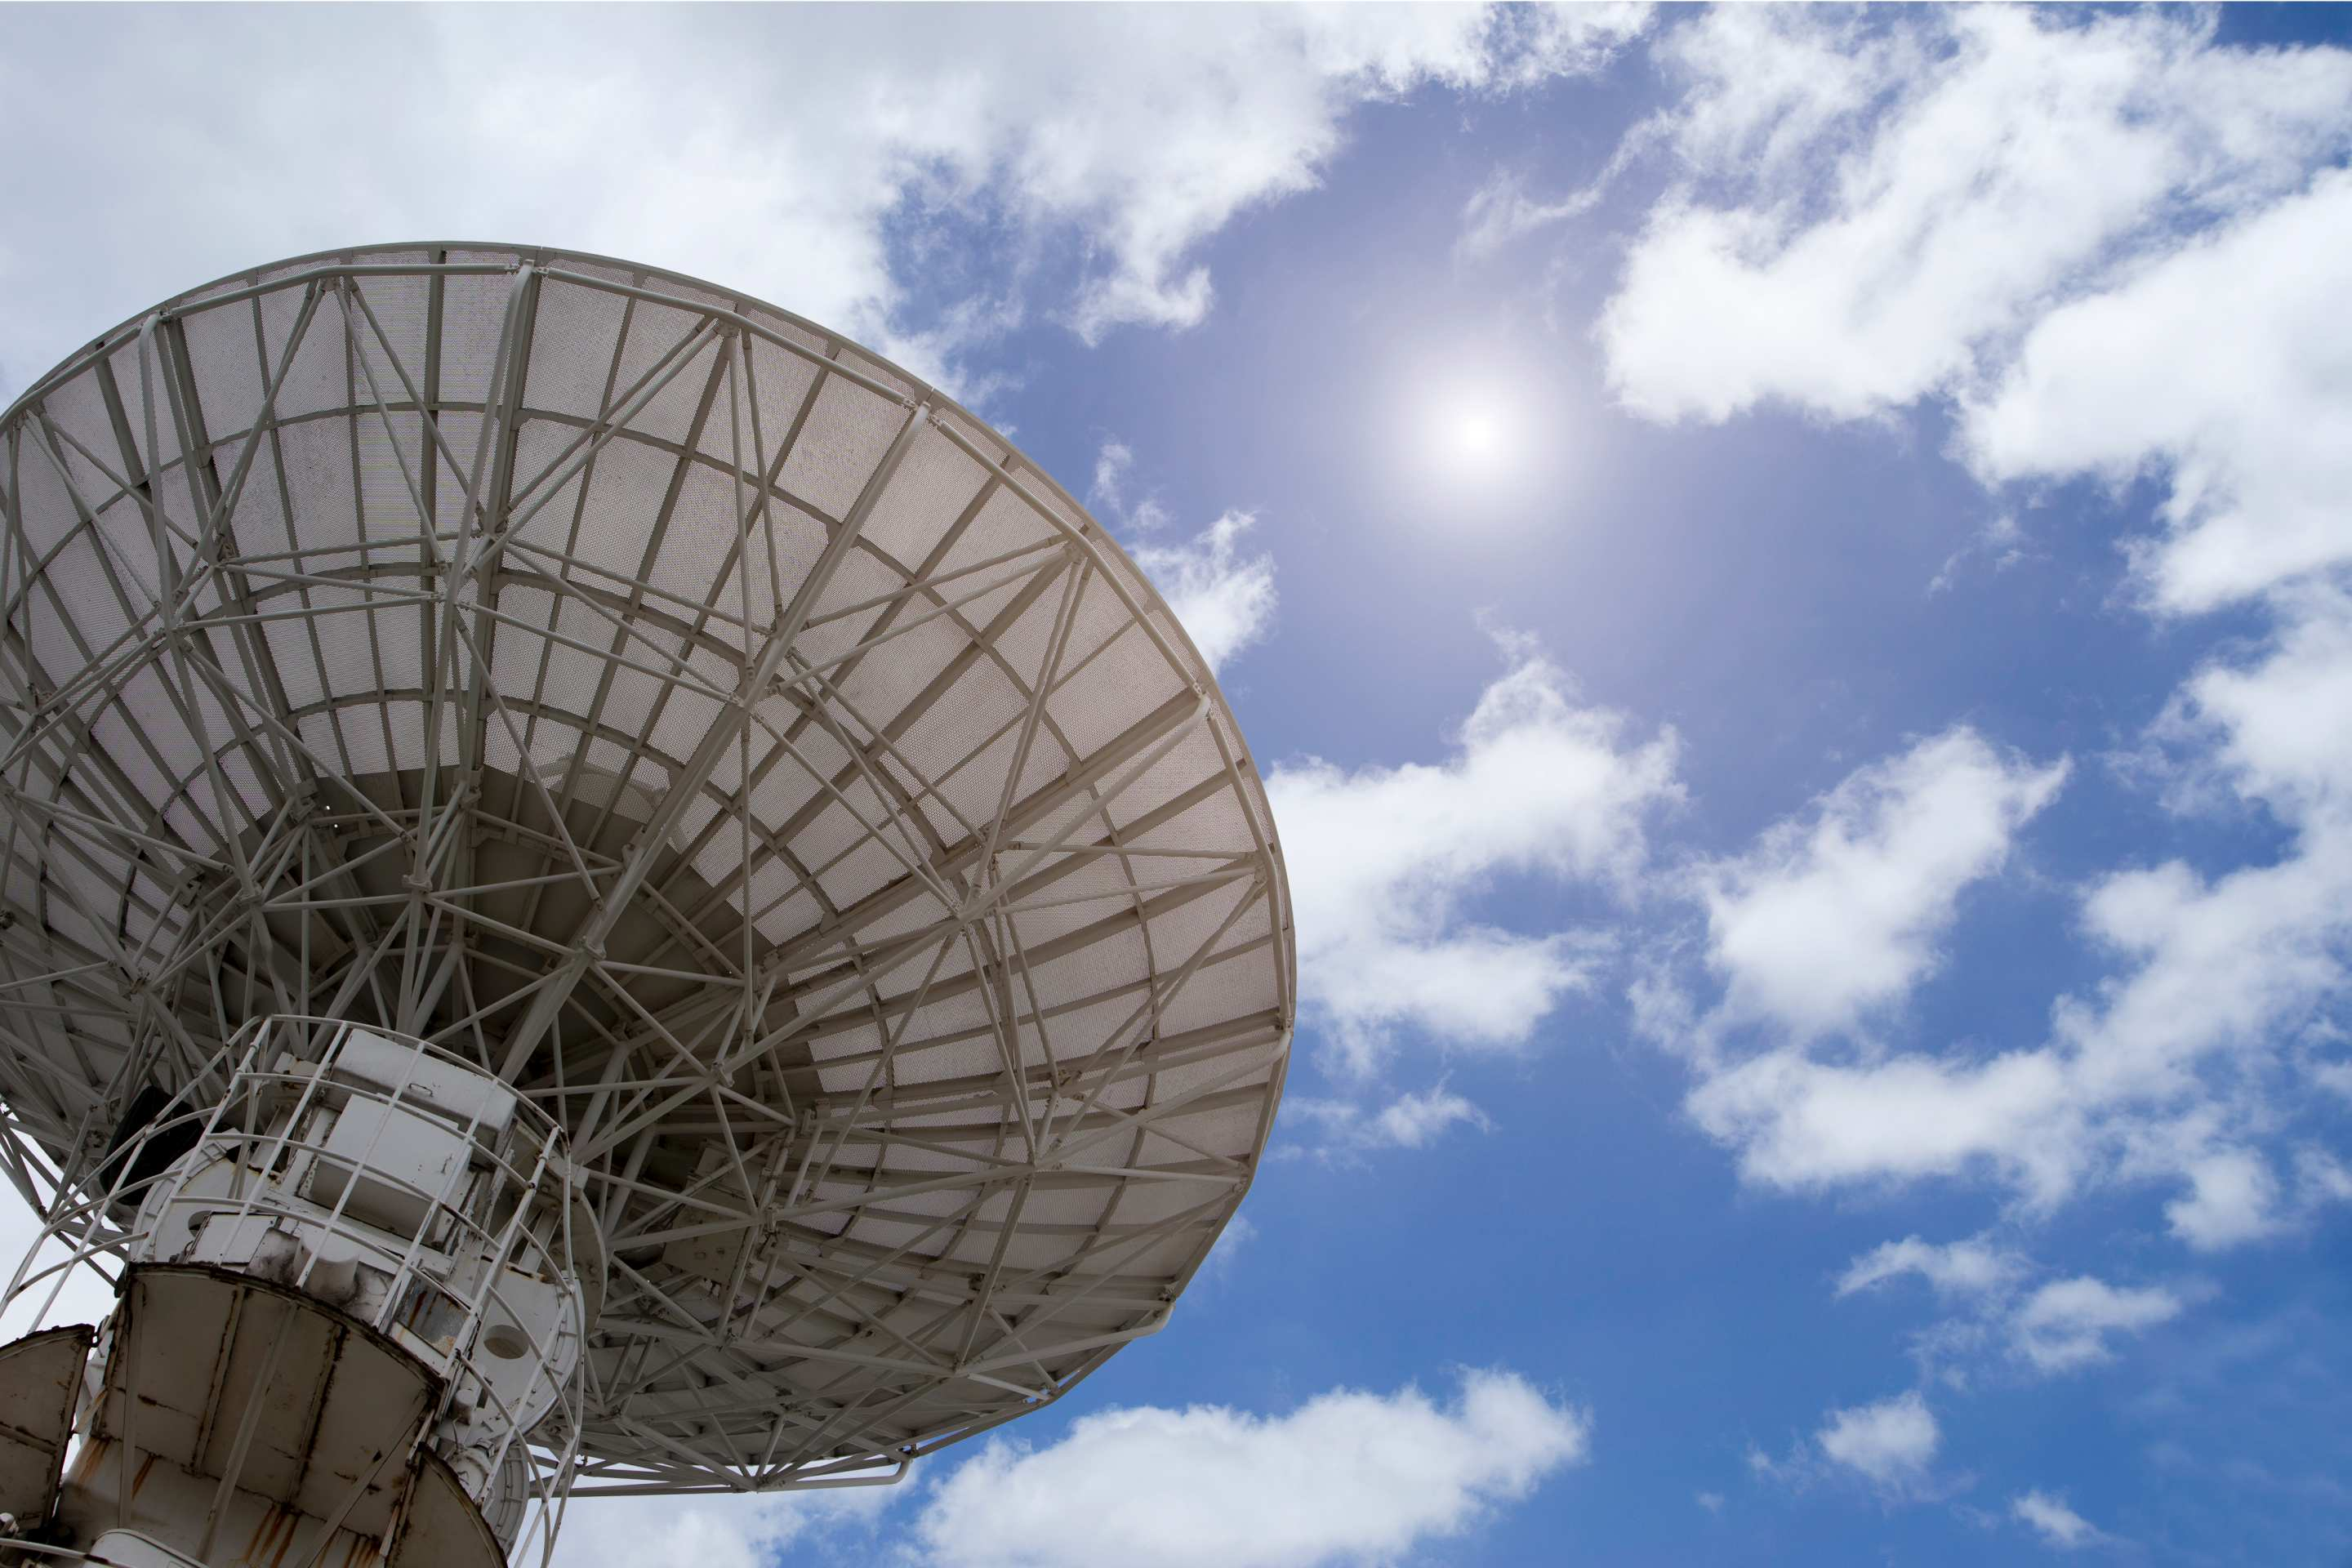 A radio antenna pointed at the sky. Image: Tony Yao/iStock